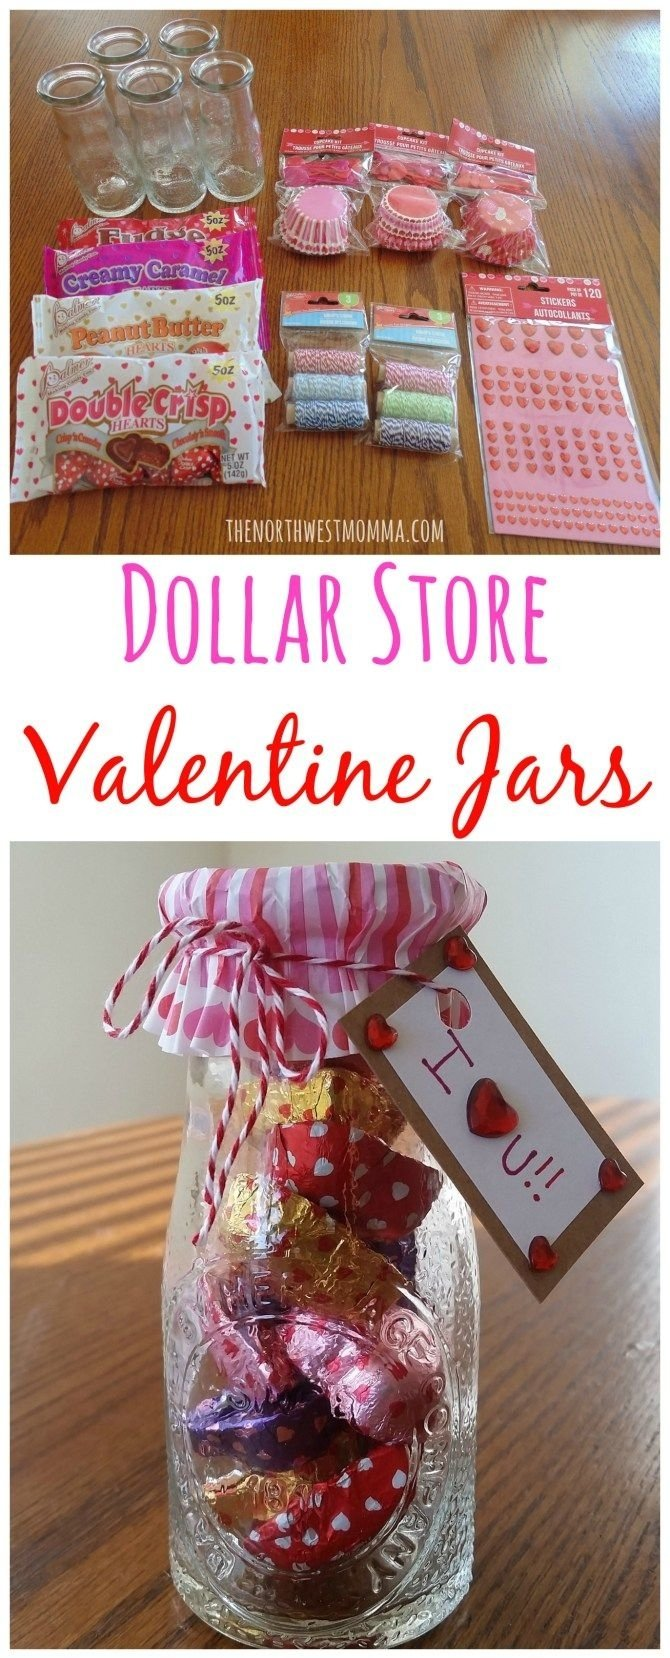 10 Lovable Valentine Gift Ideas For Friends 17 best valentine day shit images on pinterest gift ideas 2020